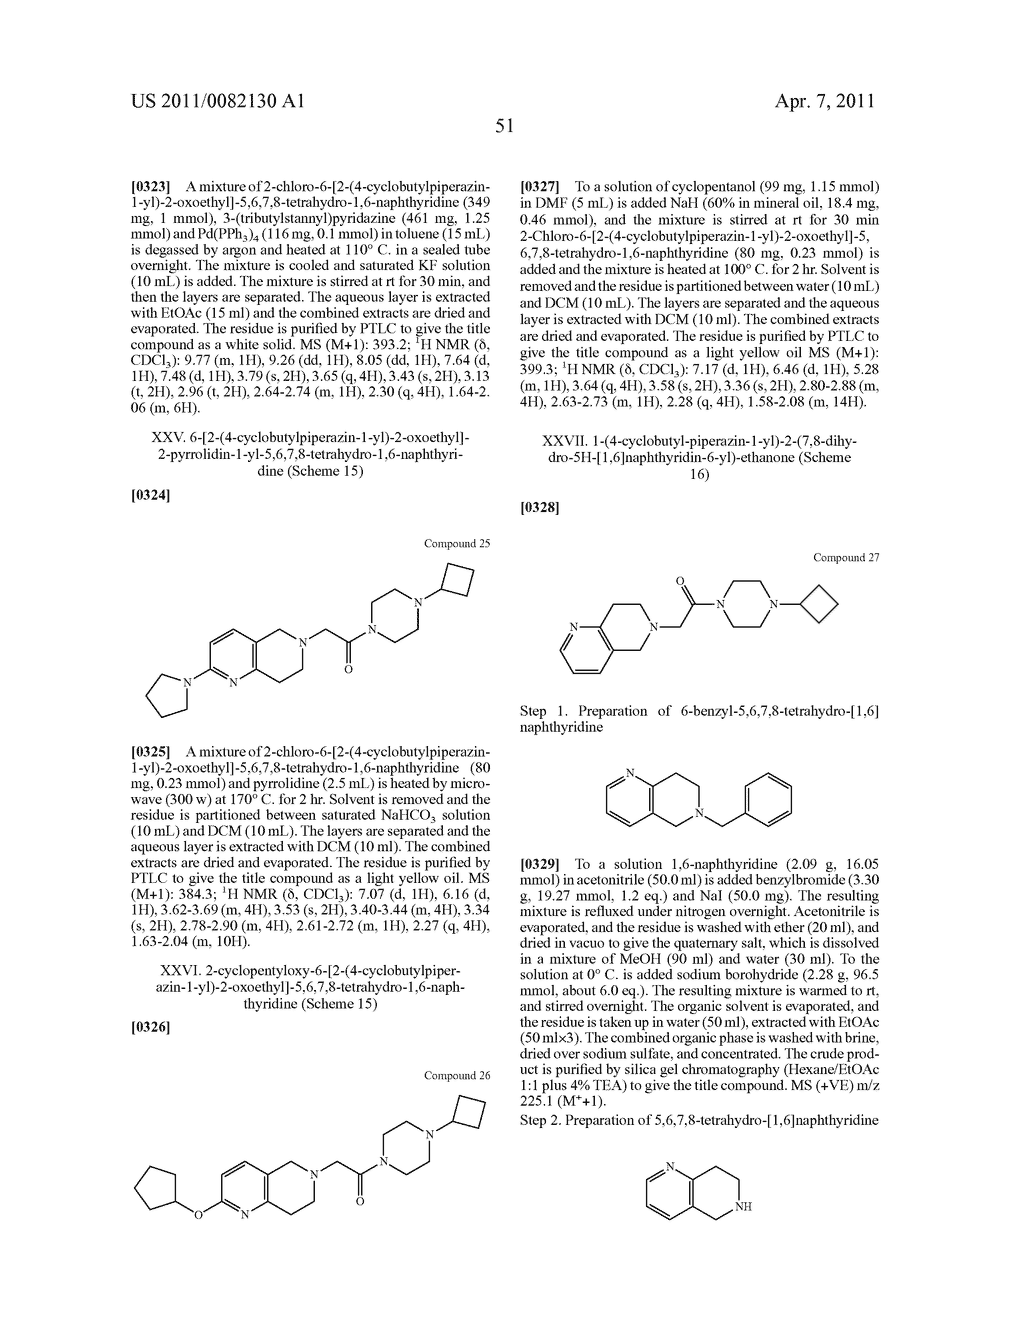 PIPERAZINYL OXOALKYL TETRAHYDROISOQUINOLINES AND RELATED ANALOGUES - diagram, schematic, and image 52